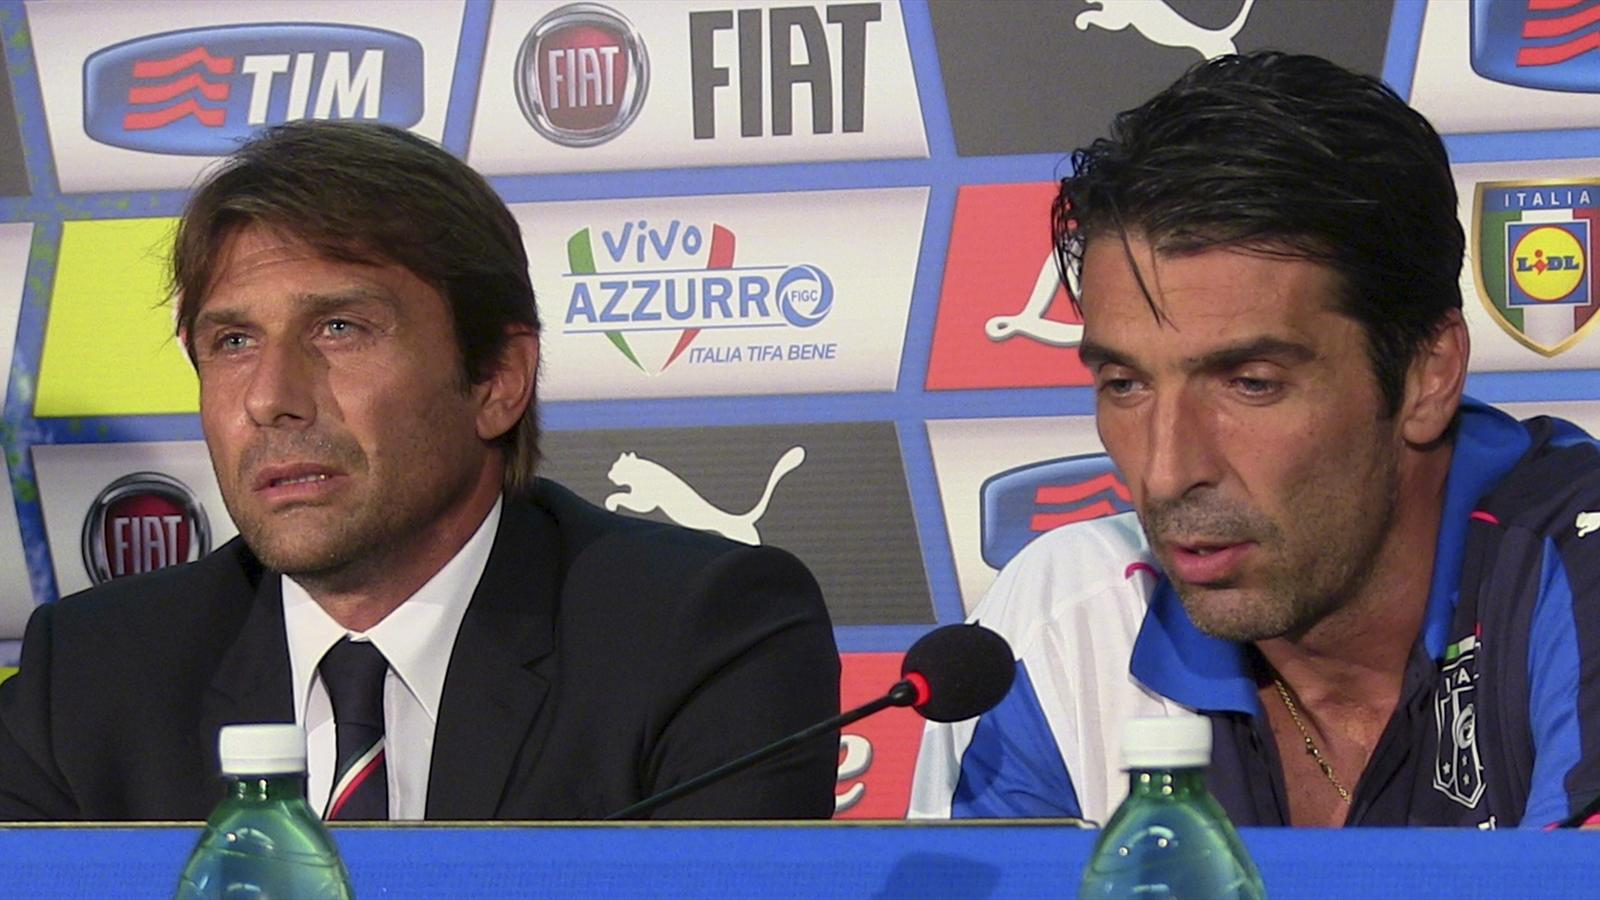 Italy's goalkeeper Gianluigi Buffon (R) talks during a news conference, with his coach Antonio Conte, before the Euro 2016 qualifying match against Bulgaria in Palermo, Italy